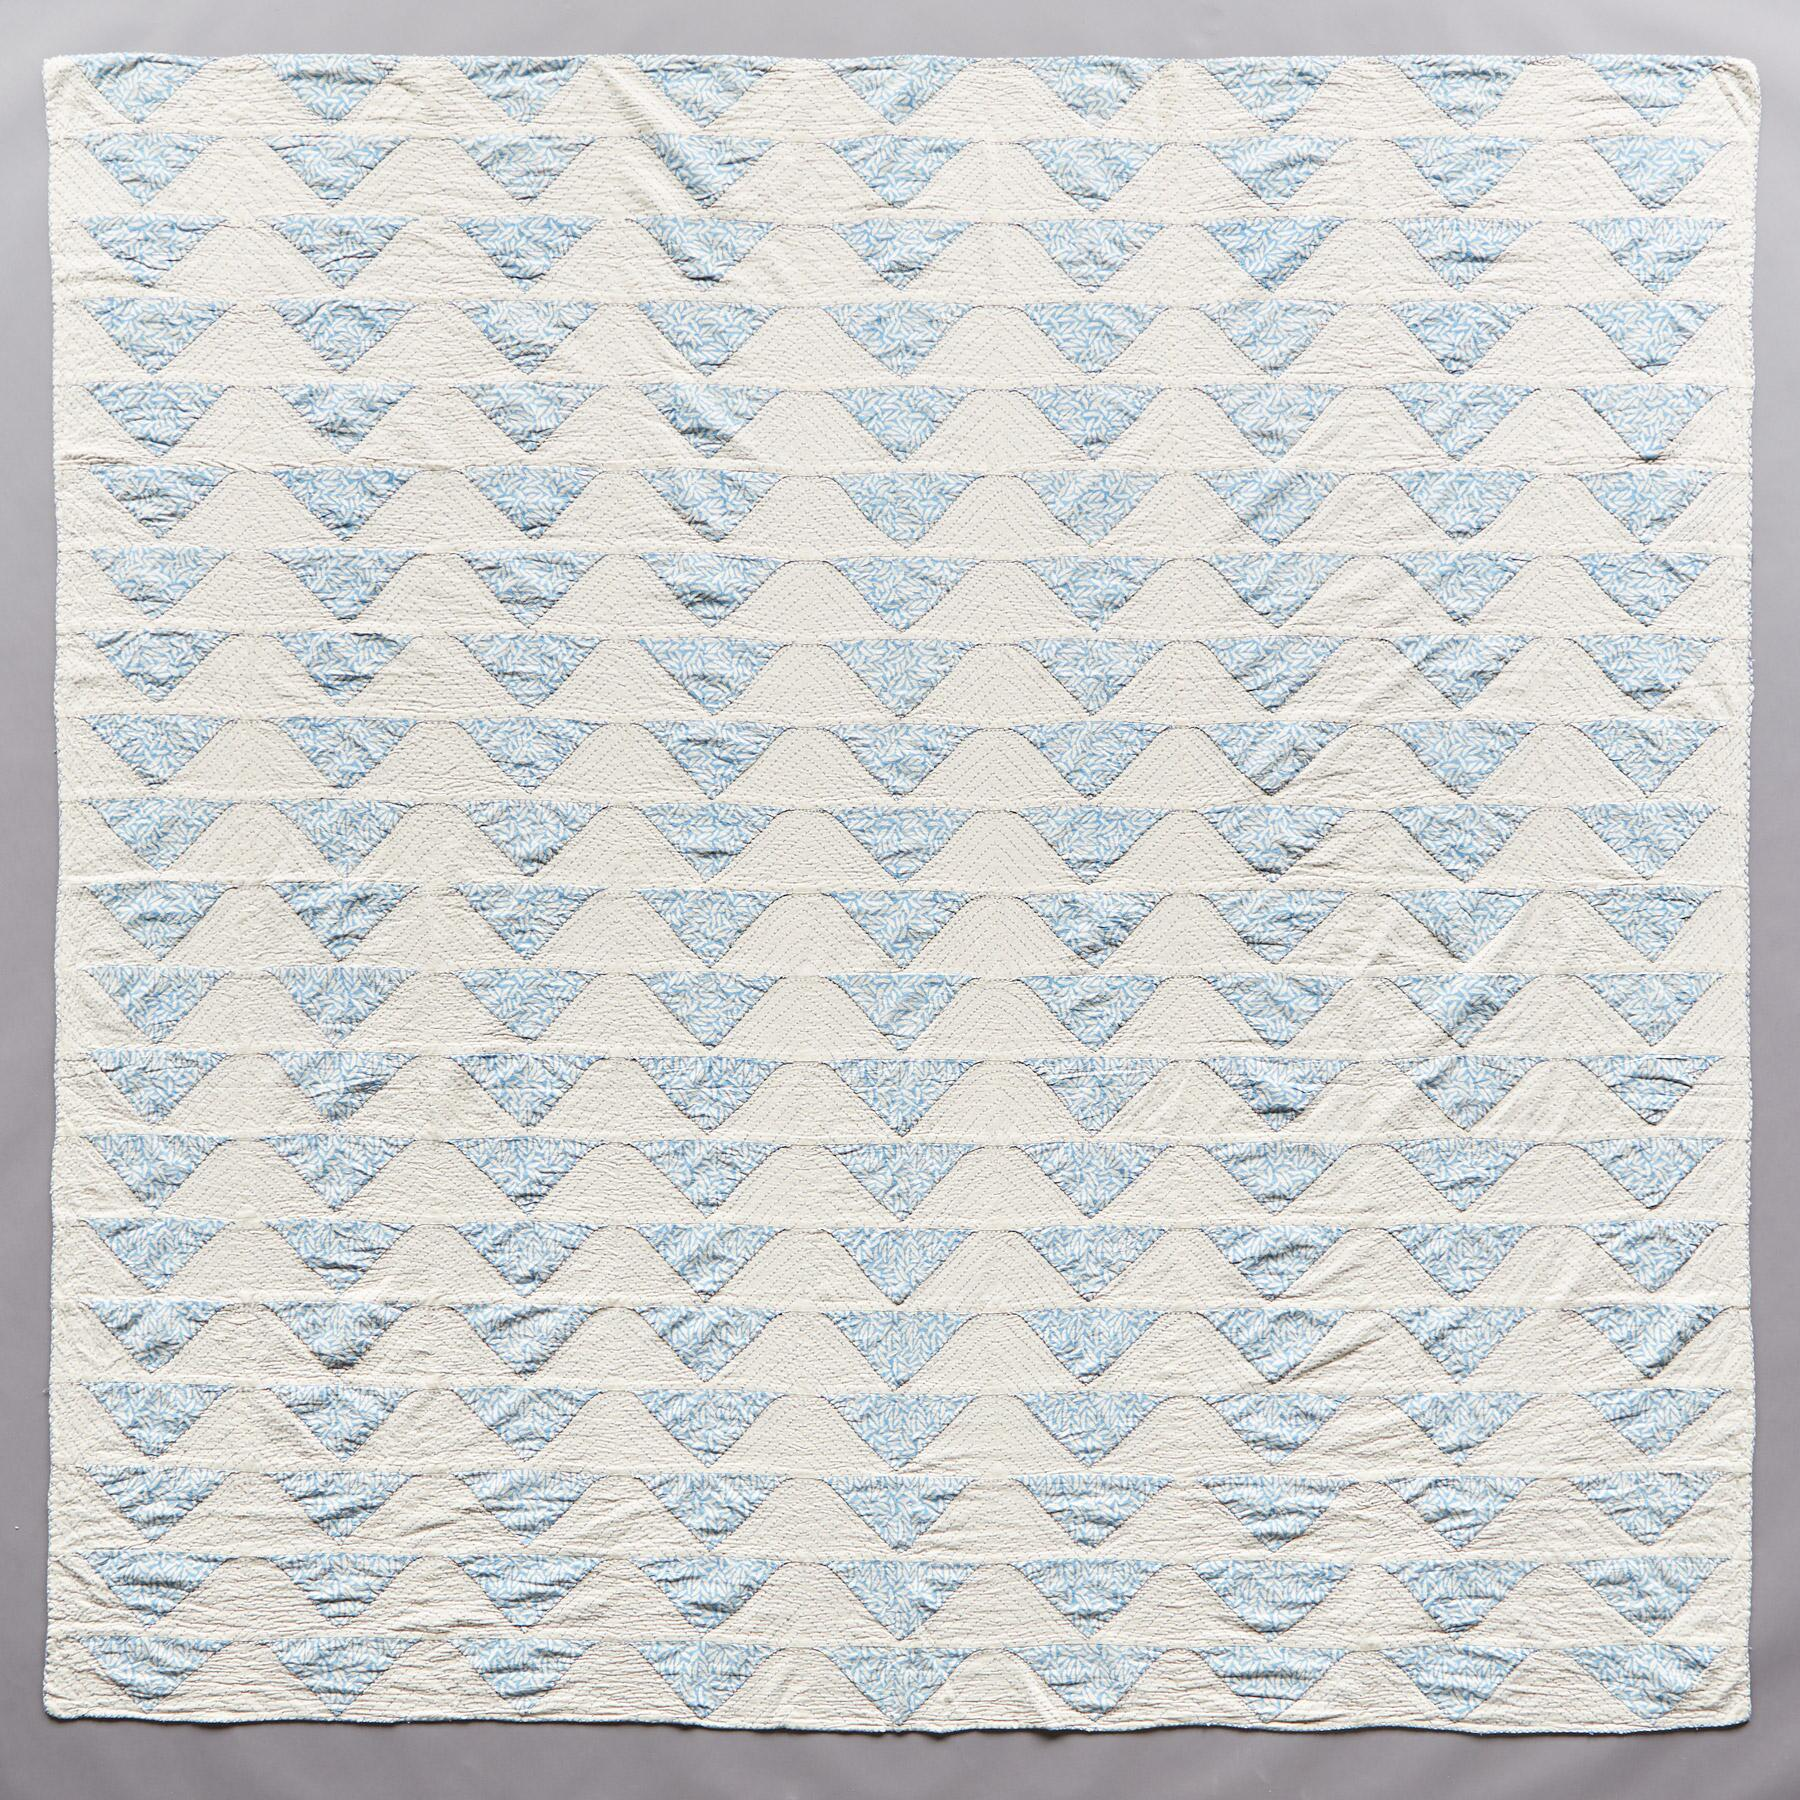 SKIES OF BLUE LTWT QUILT: View 2